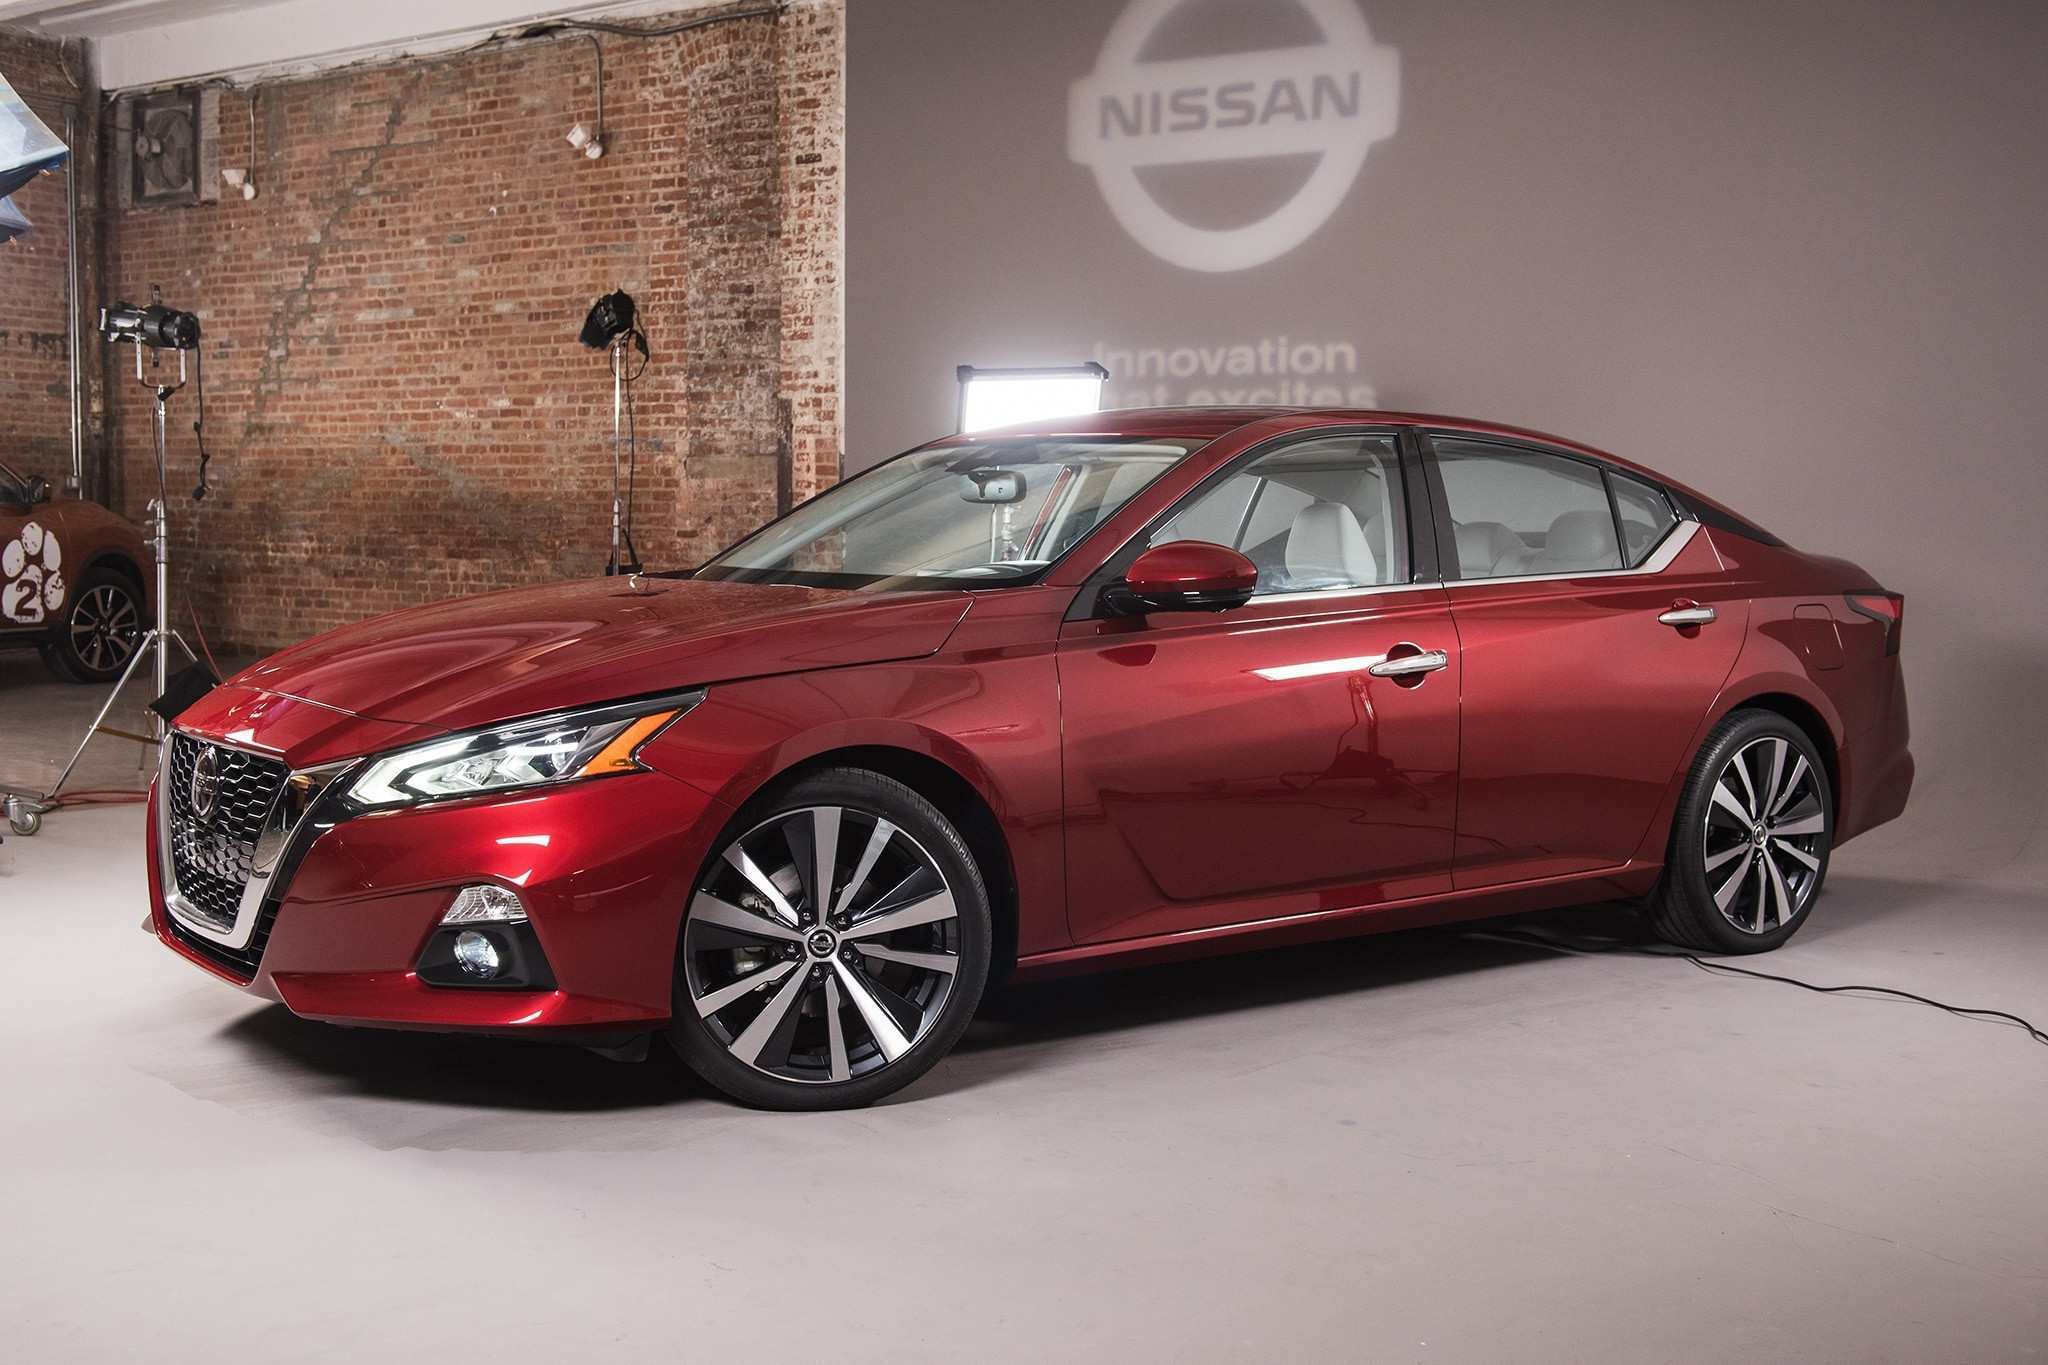 99 Great 2019 Nissan Altima Coupe Style for 2019 Nissan Altima Coupe